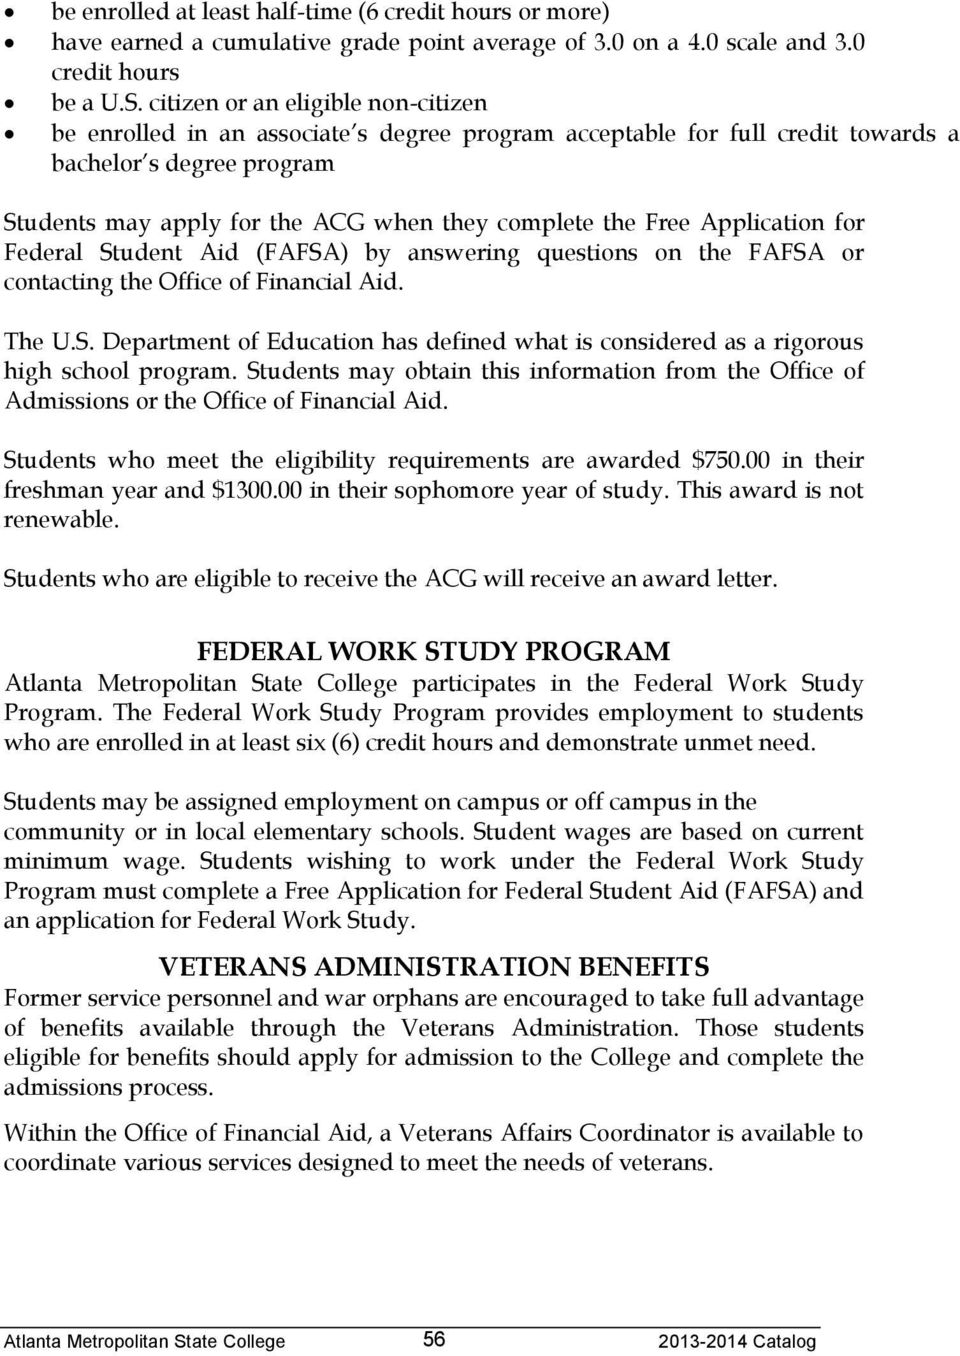 Free Application for Federal Student Aid (FAFSA) by answering questions on the FAFSA or contacting the Office of Financial Aid. The U.S. Department of Education has defined what is considered as a rigorous high school program.